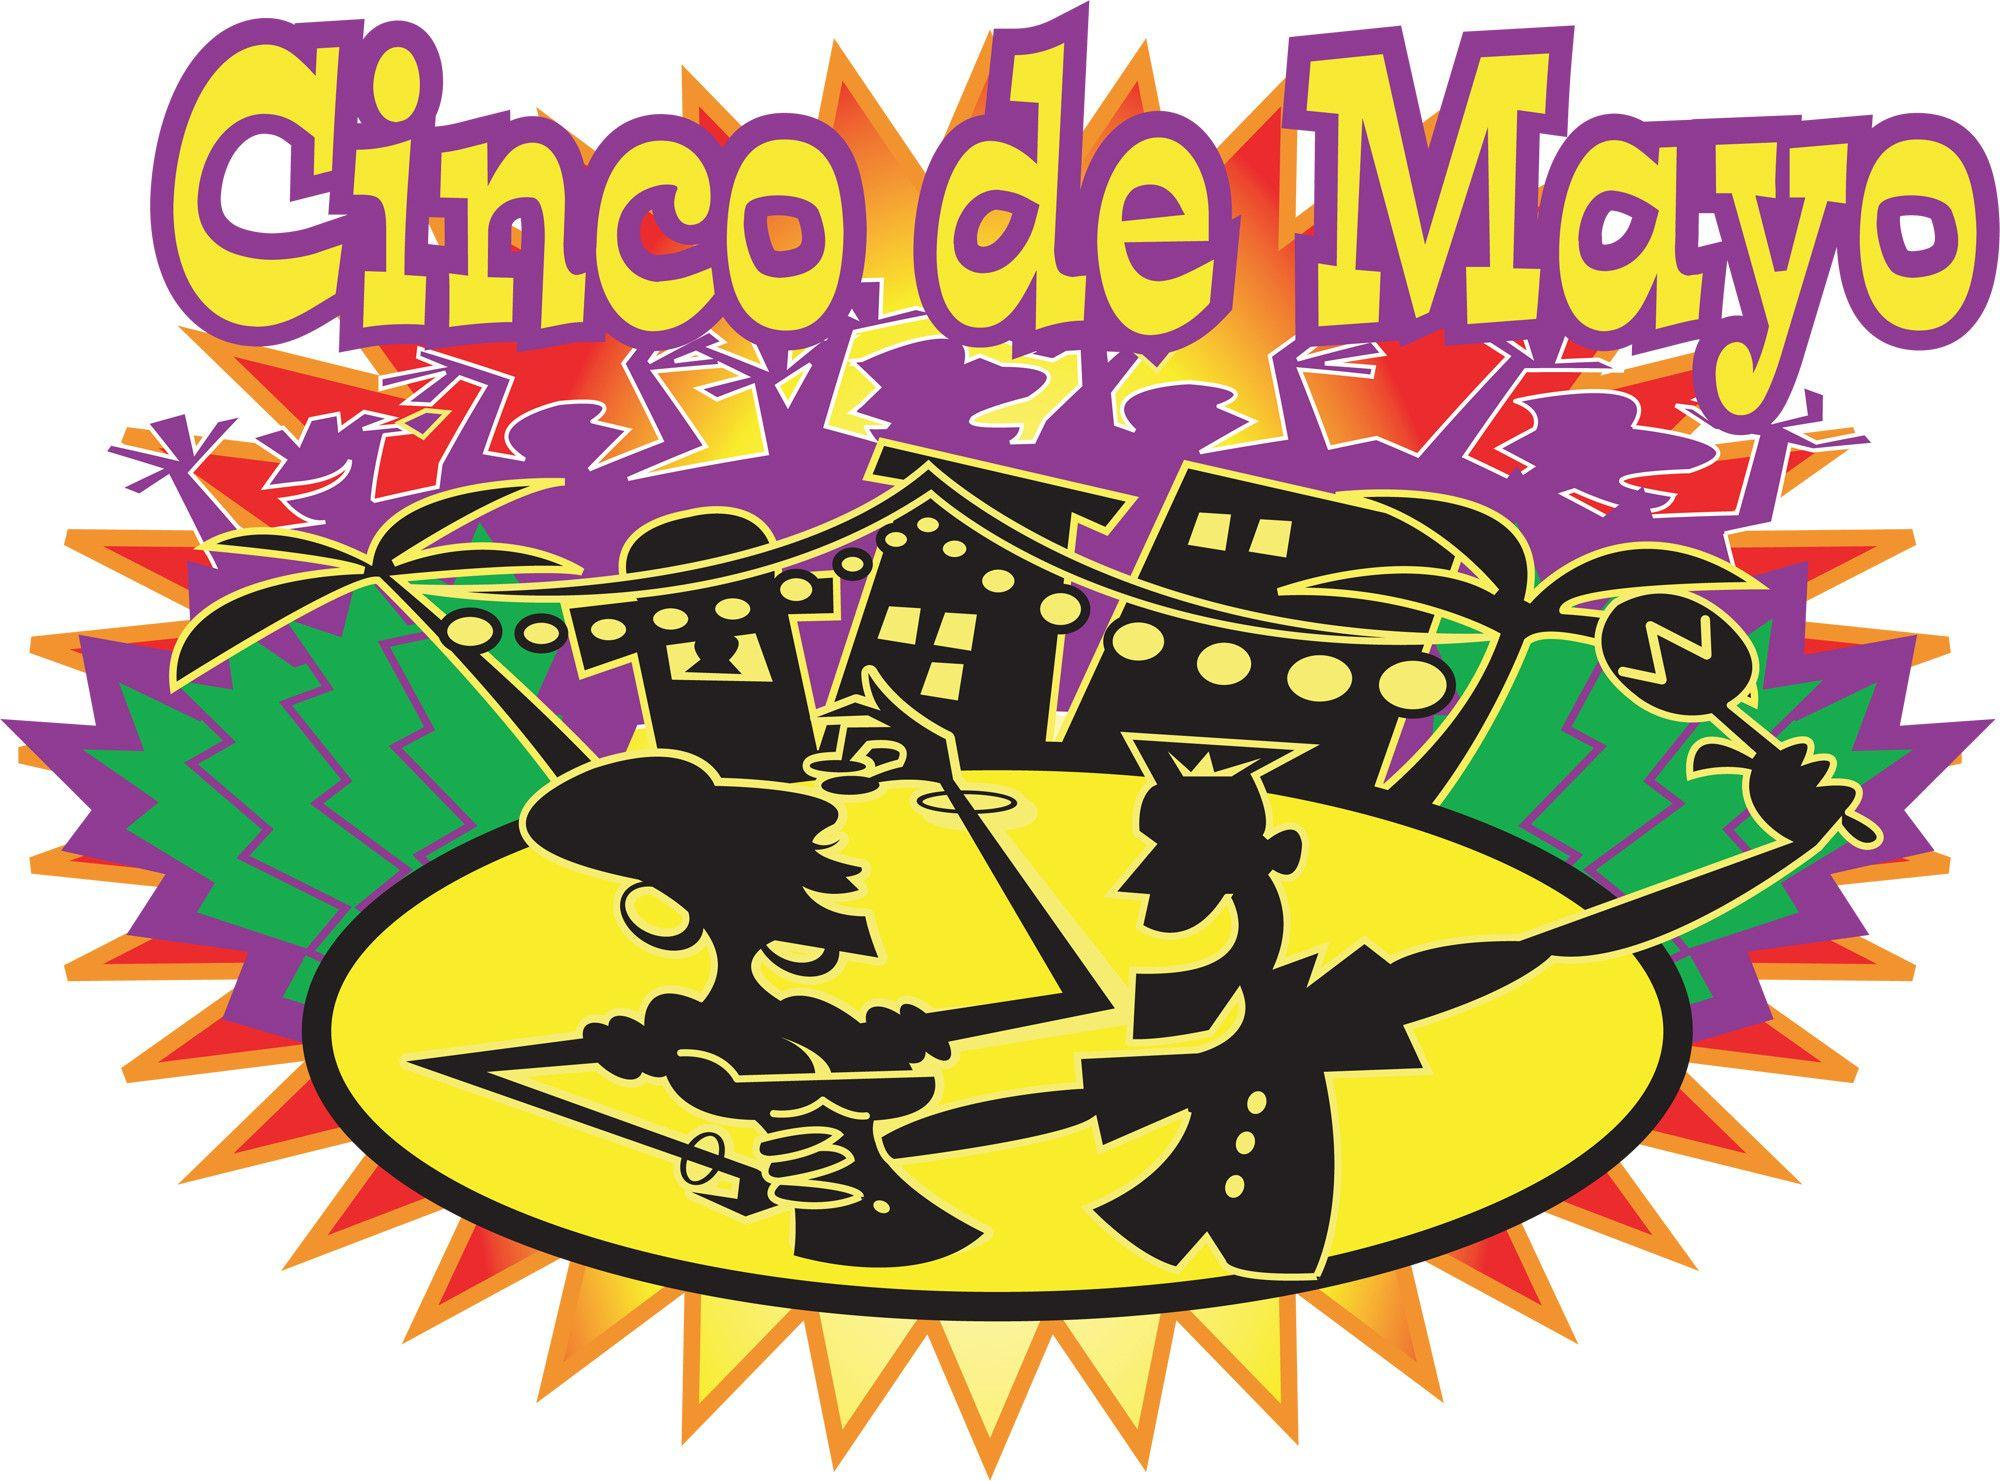 happy cinco de mayo picture | Desktop Backgrounds for Free HD ...